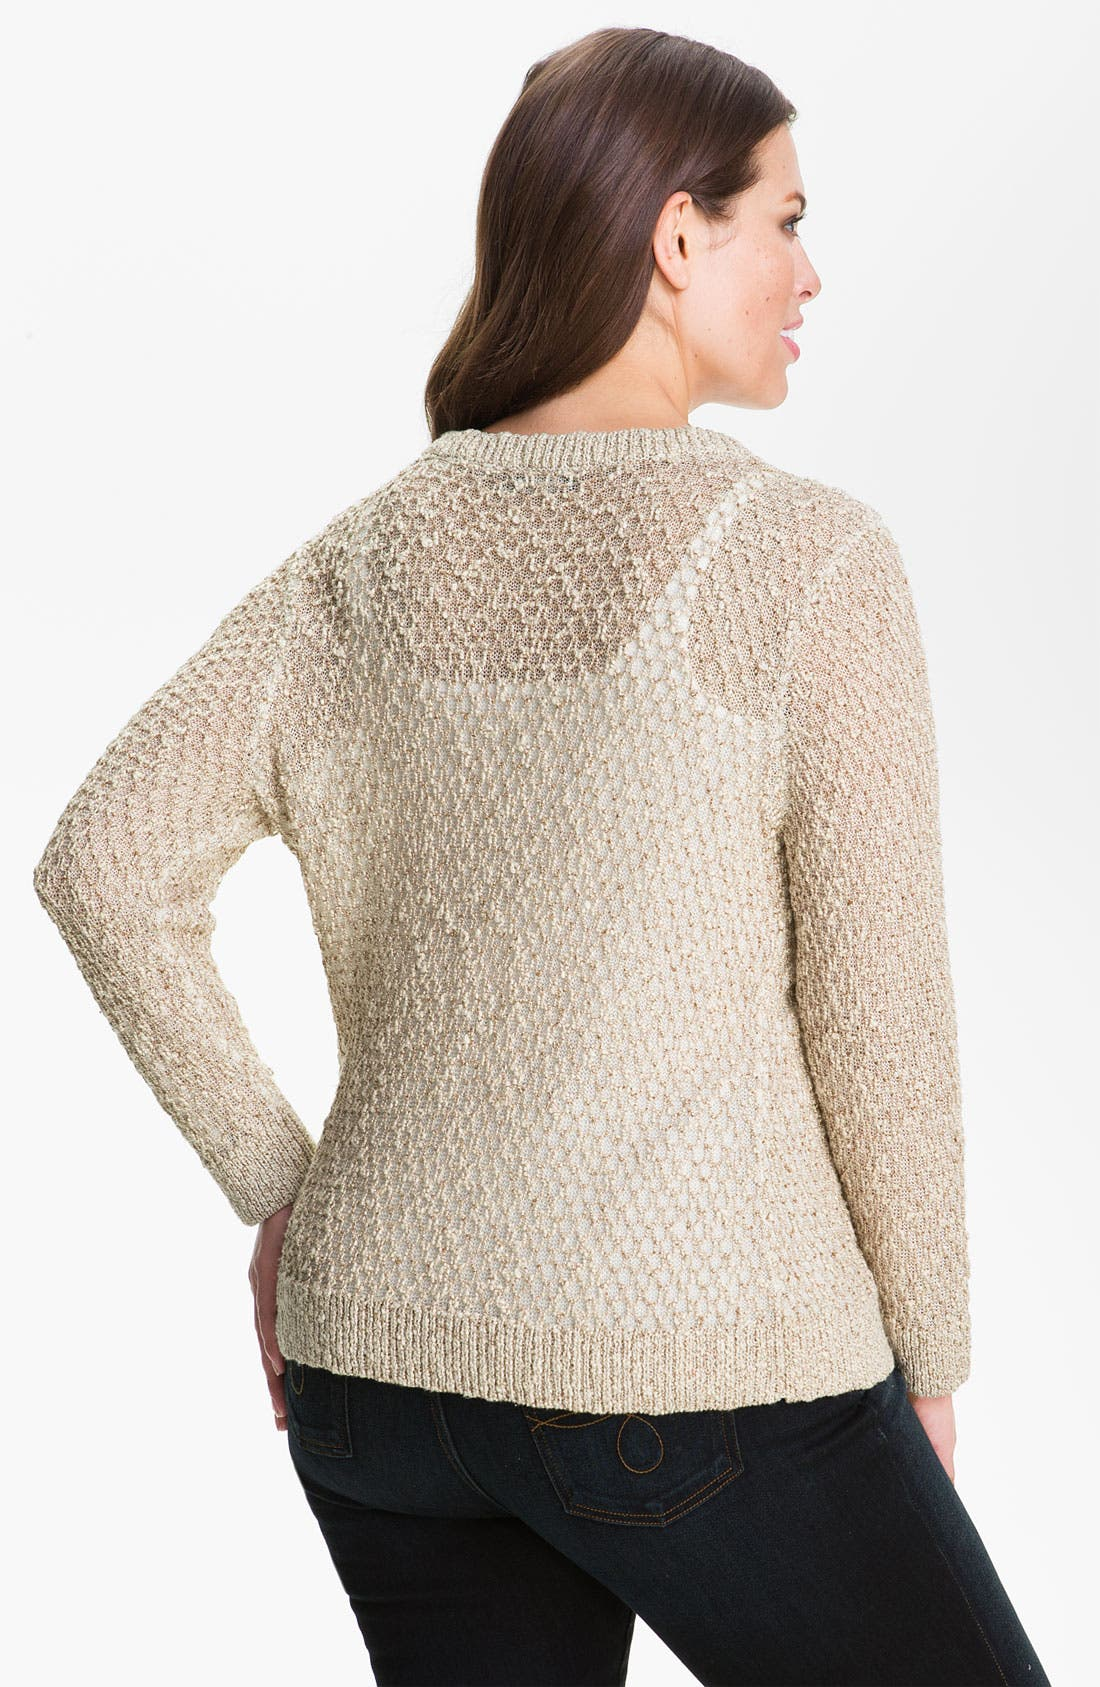 Nic + Zoe 'Shimmer' Cardigan,                             Alternate thumbnail 2, color,                             Champagne